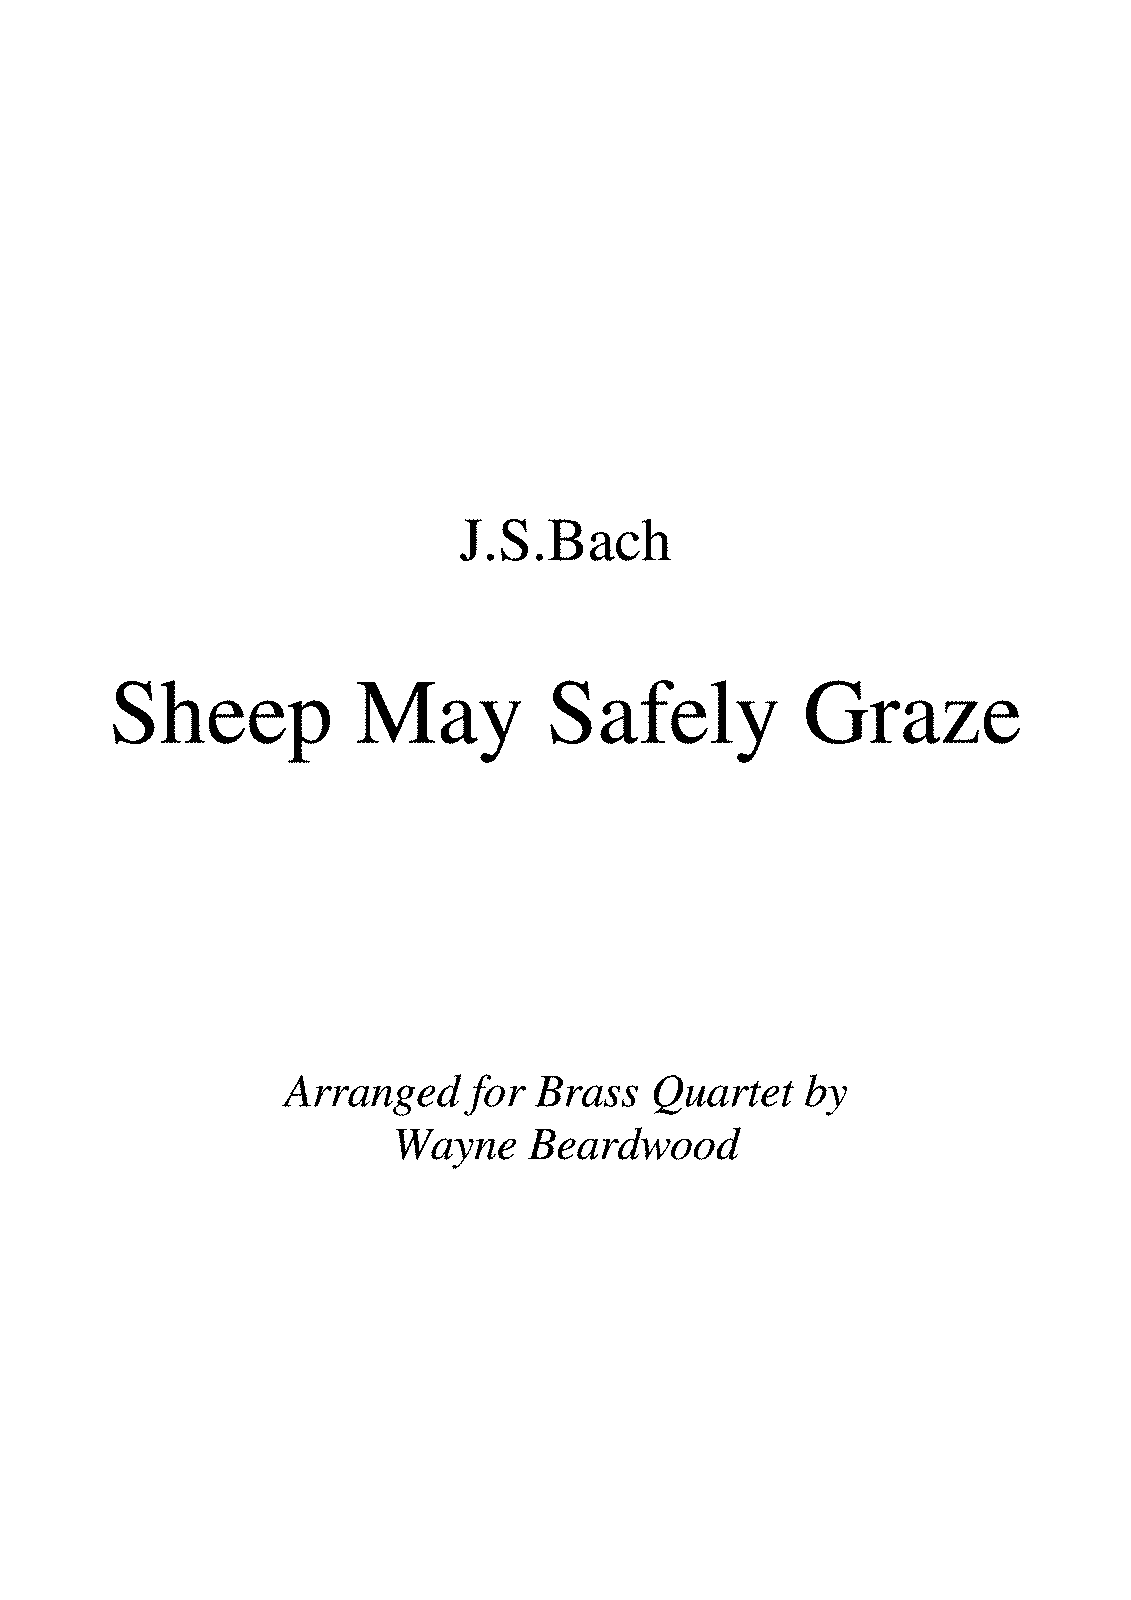 PMLP127032-Sheep May Safely Graze Score.pdf